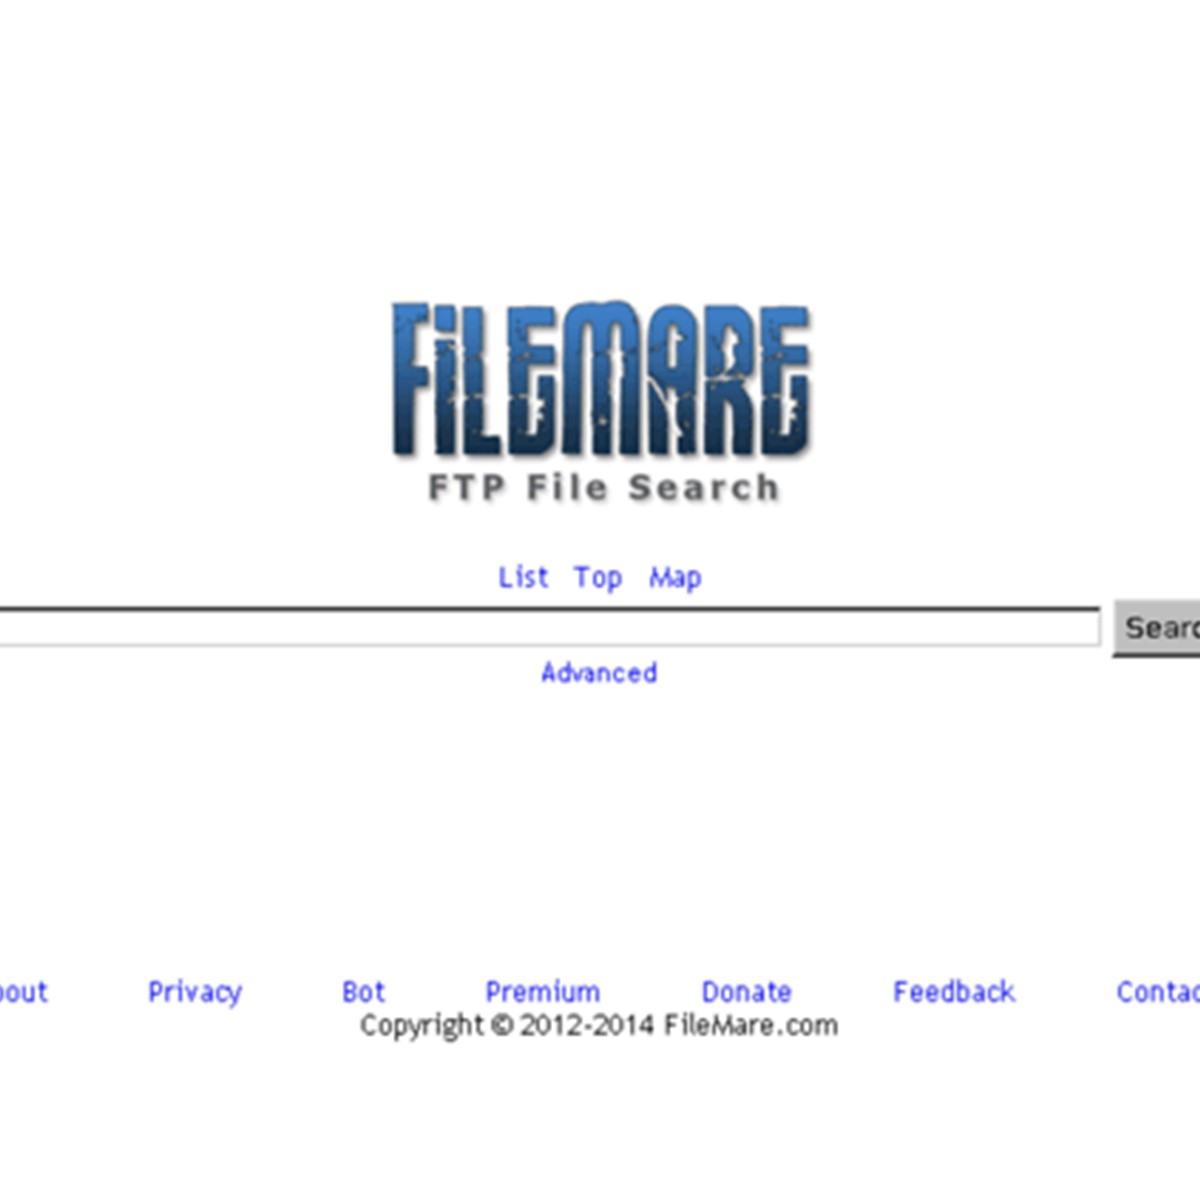 Filemare Alternatives and Similar Websites and Apps